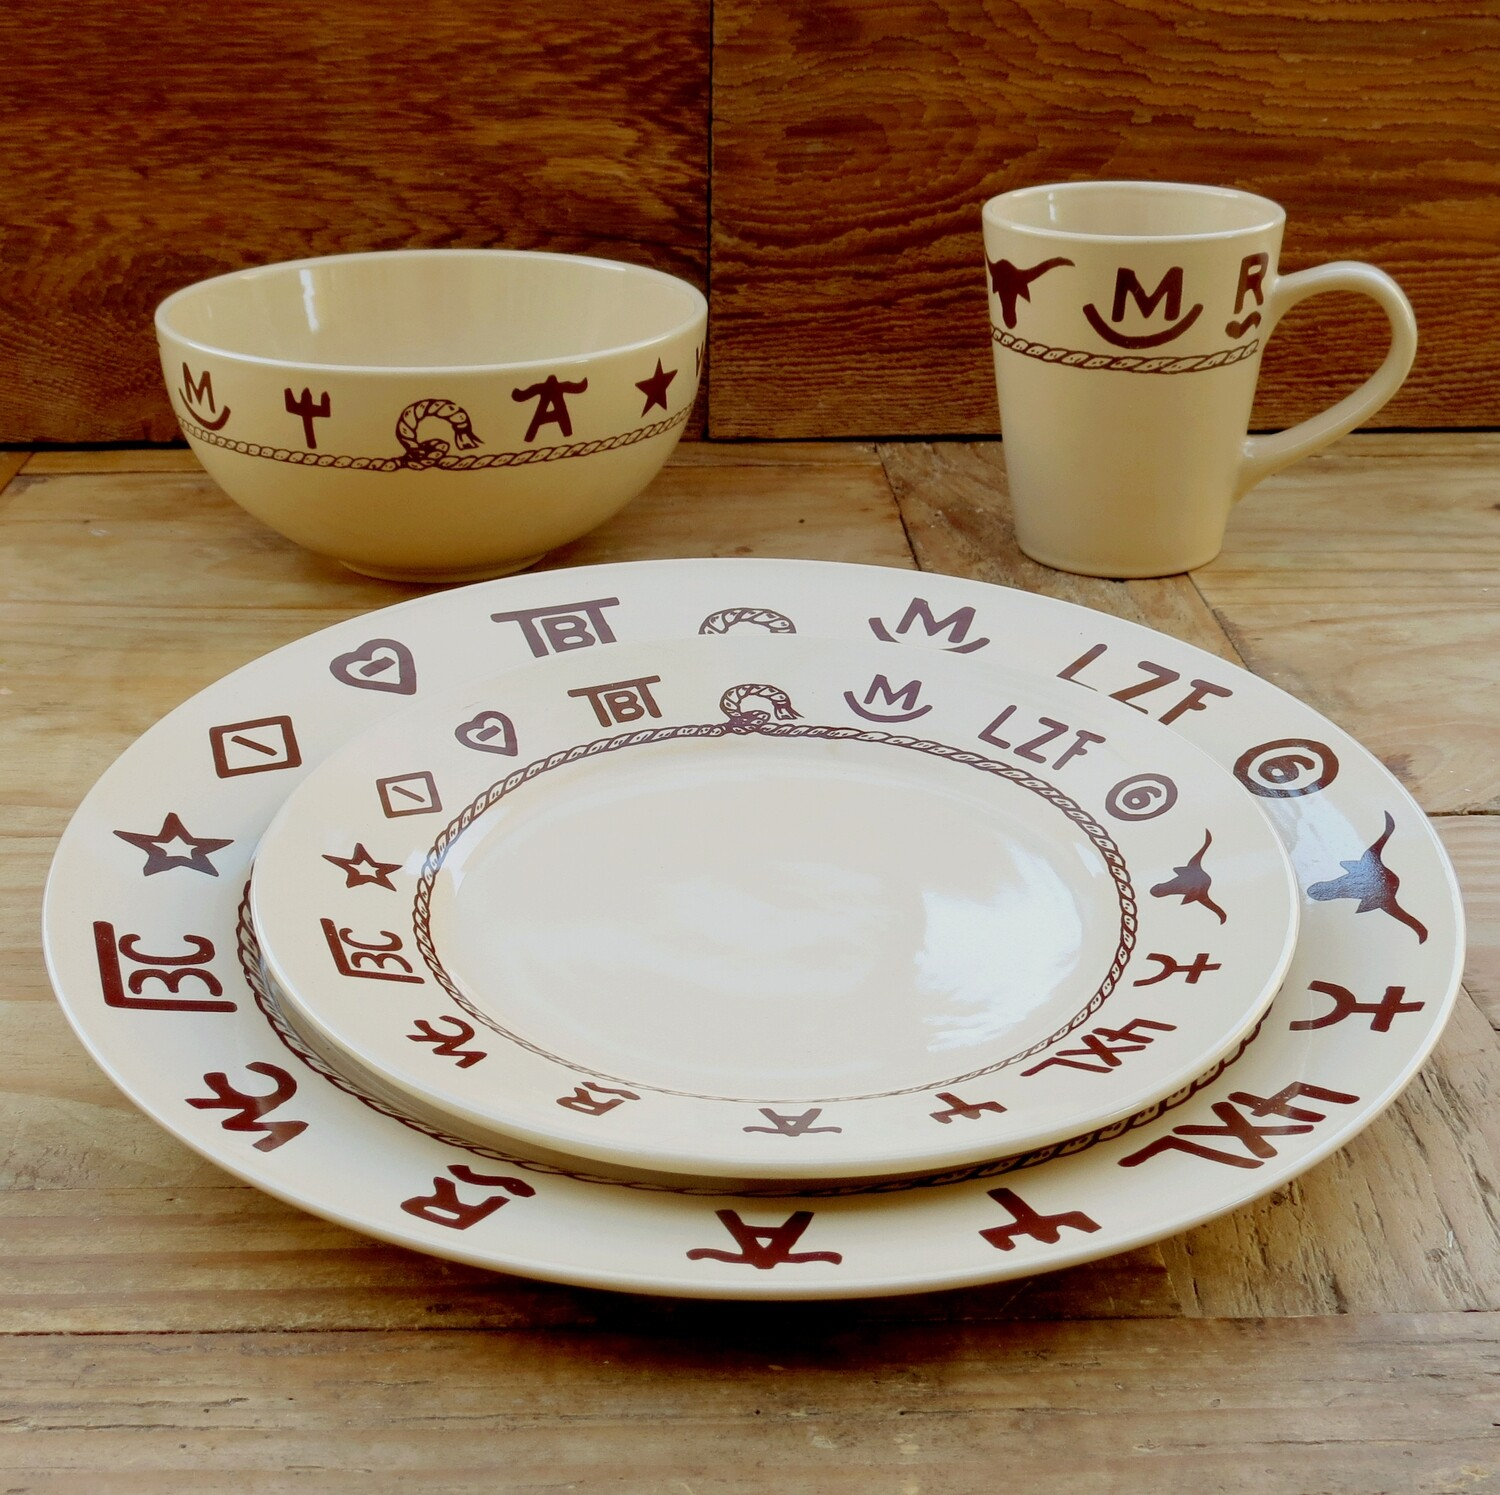 16 pieces dinnerware set, branded